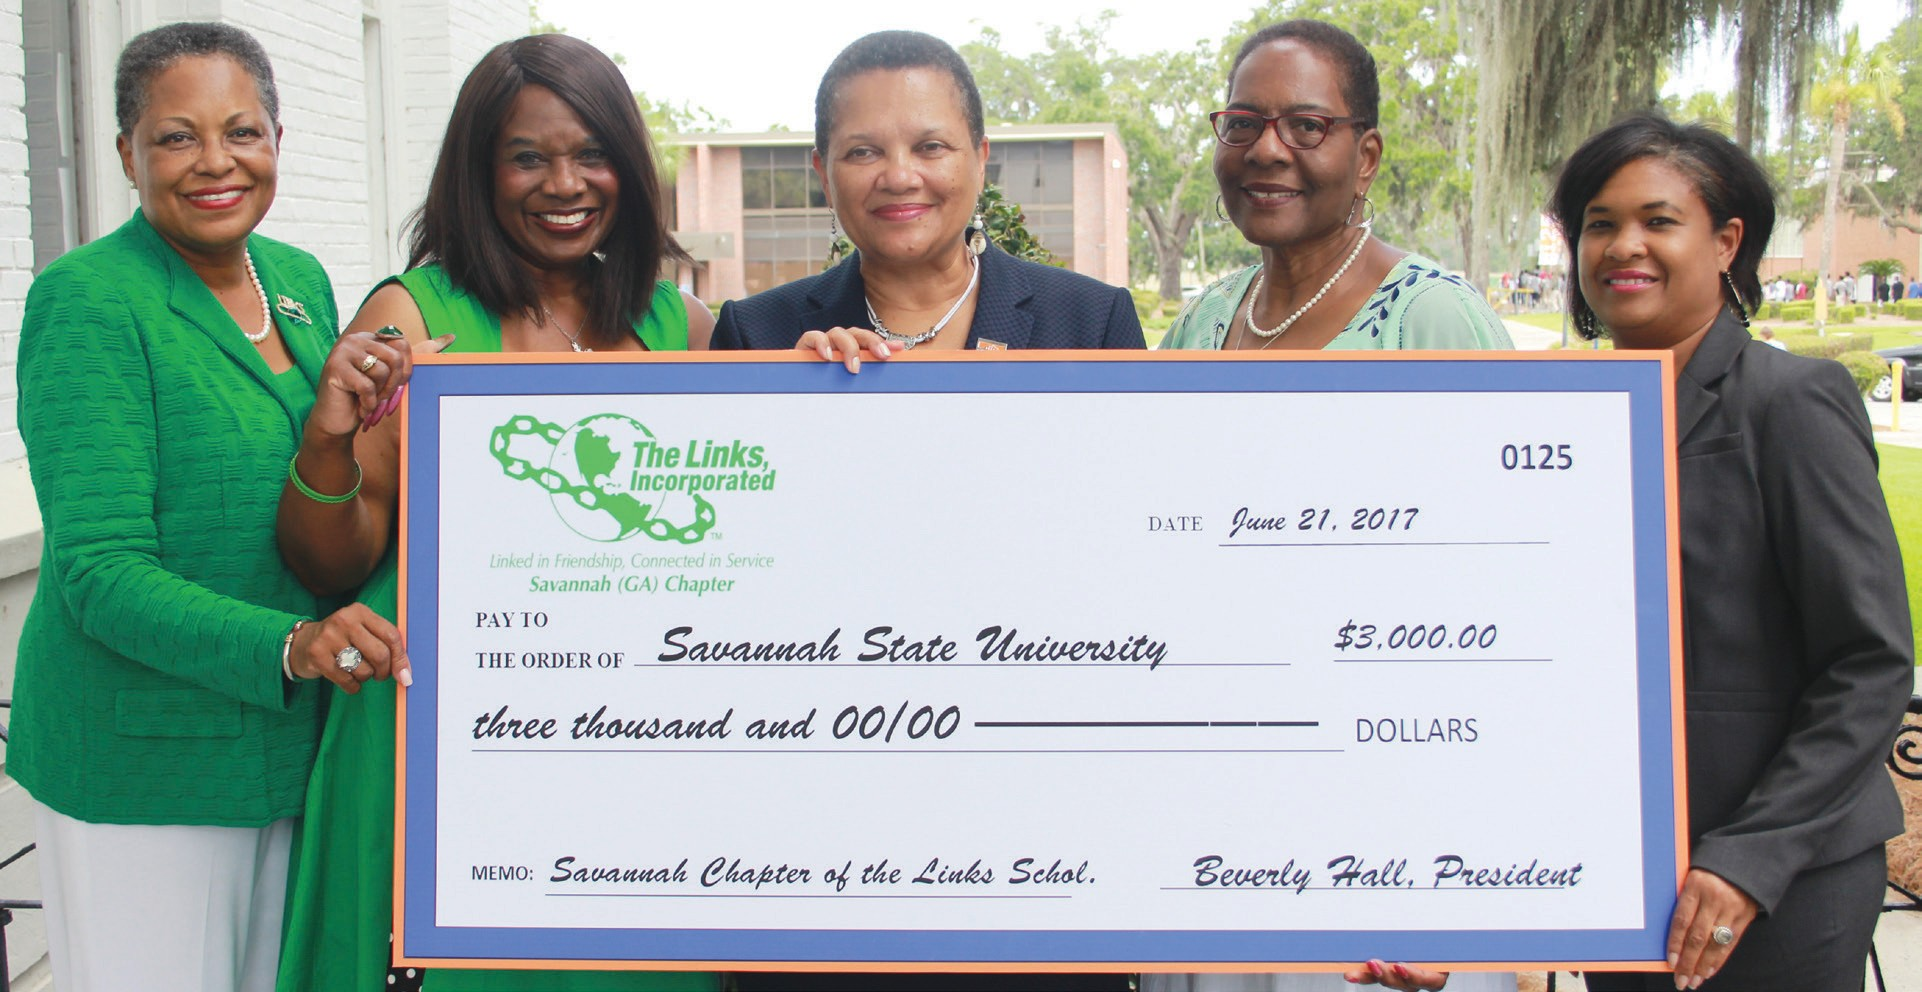 L-R: Shevon Carr, Savannah Chapter Links President Beverly Hall, SSU President Cheryl D. Dozier, Wanda Lloyd and Patrice Grant.